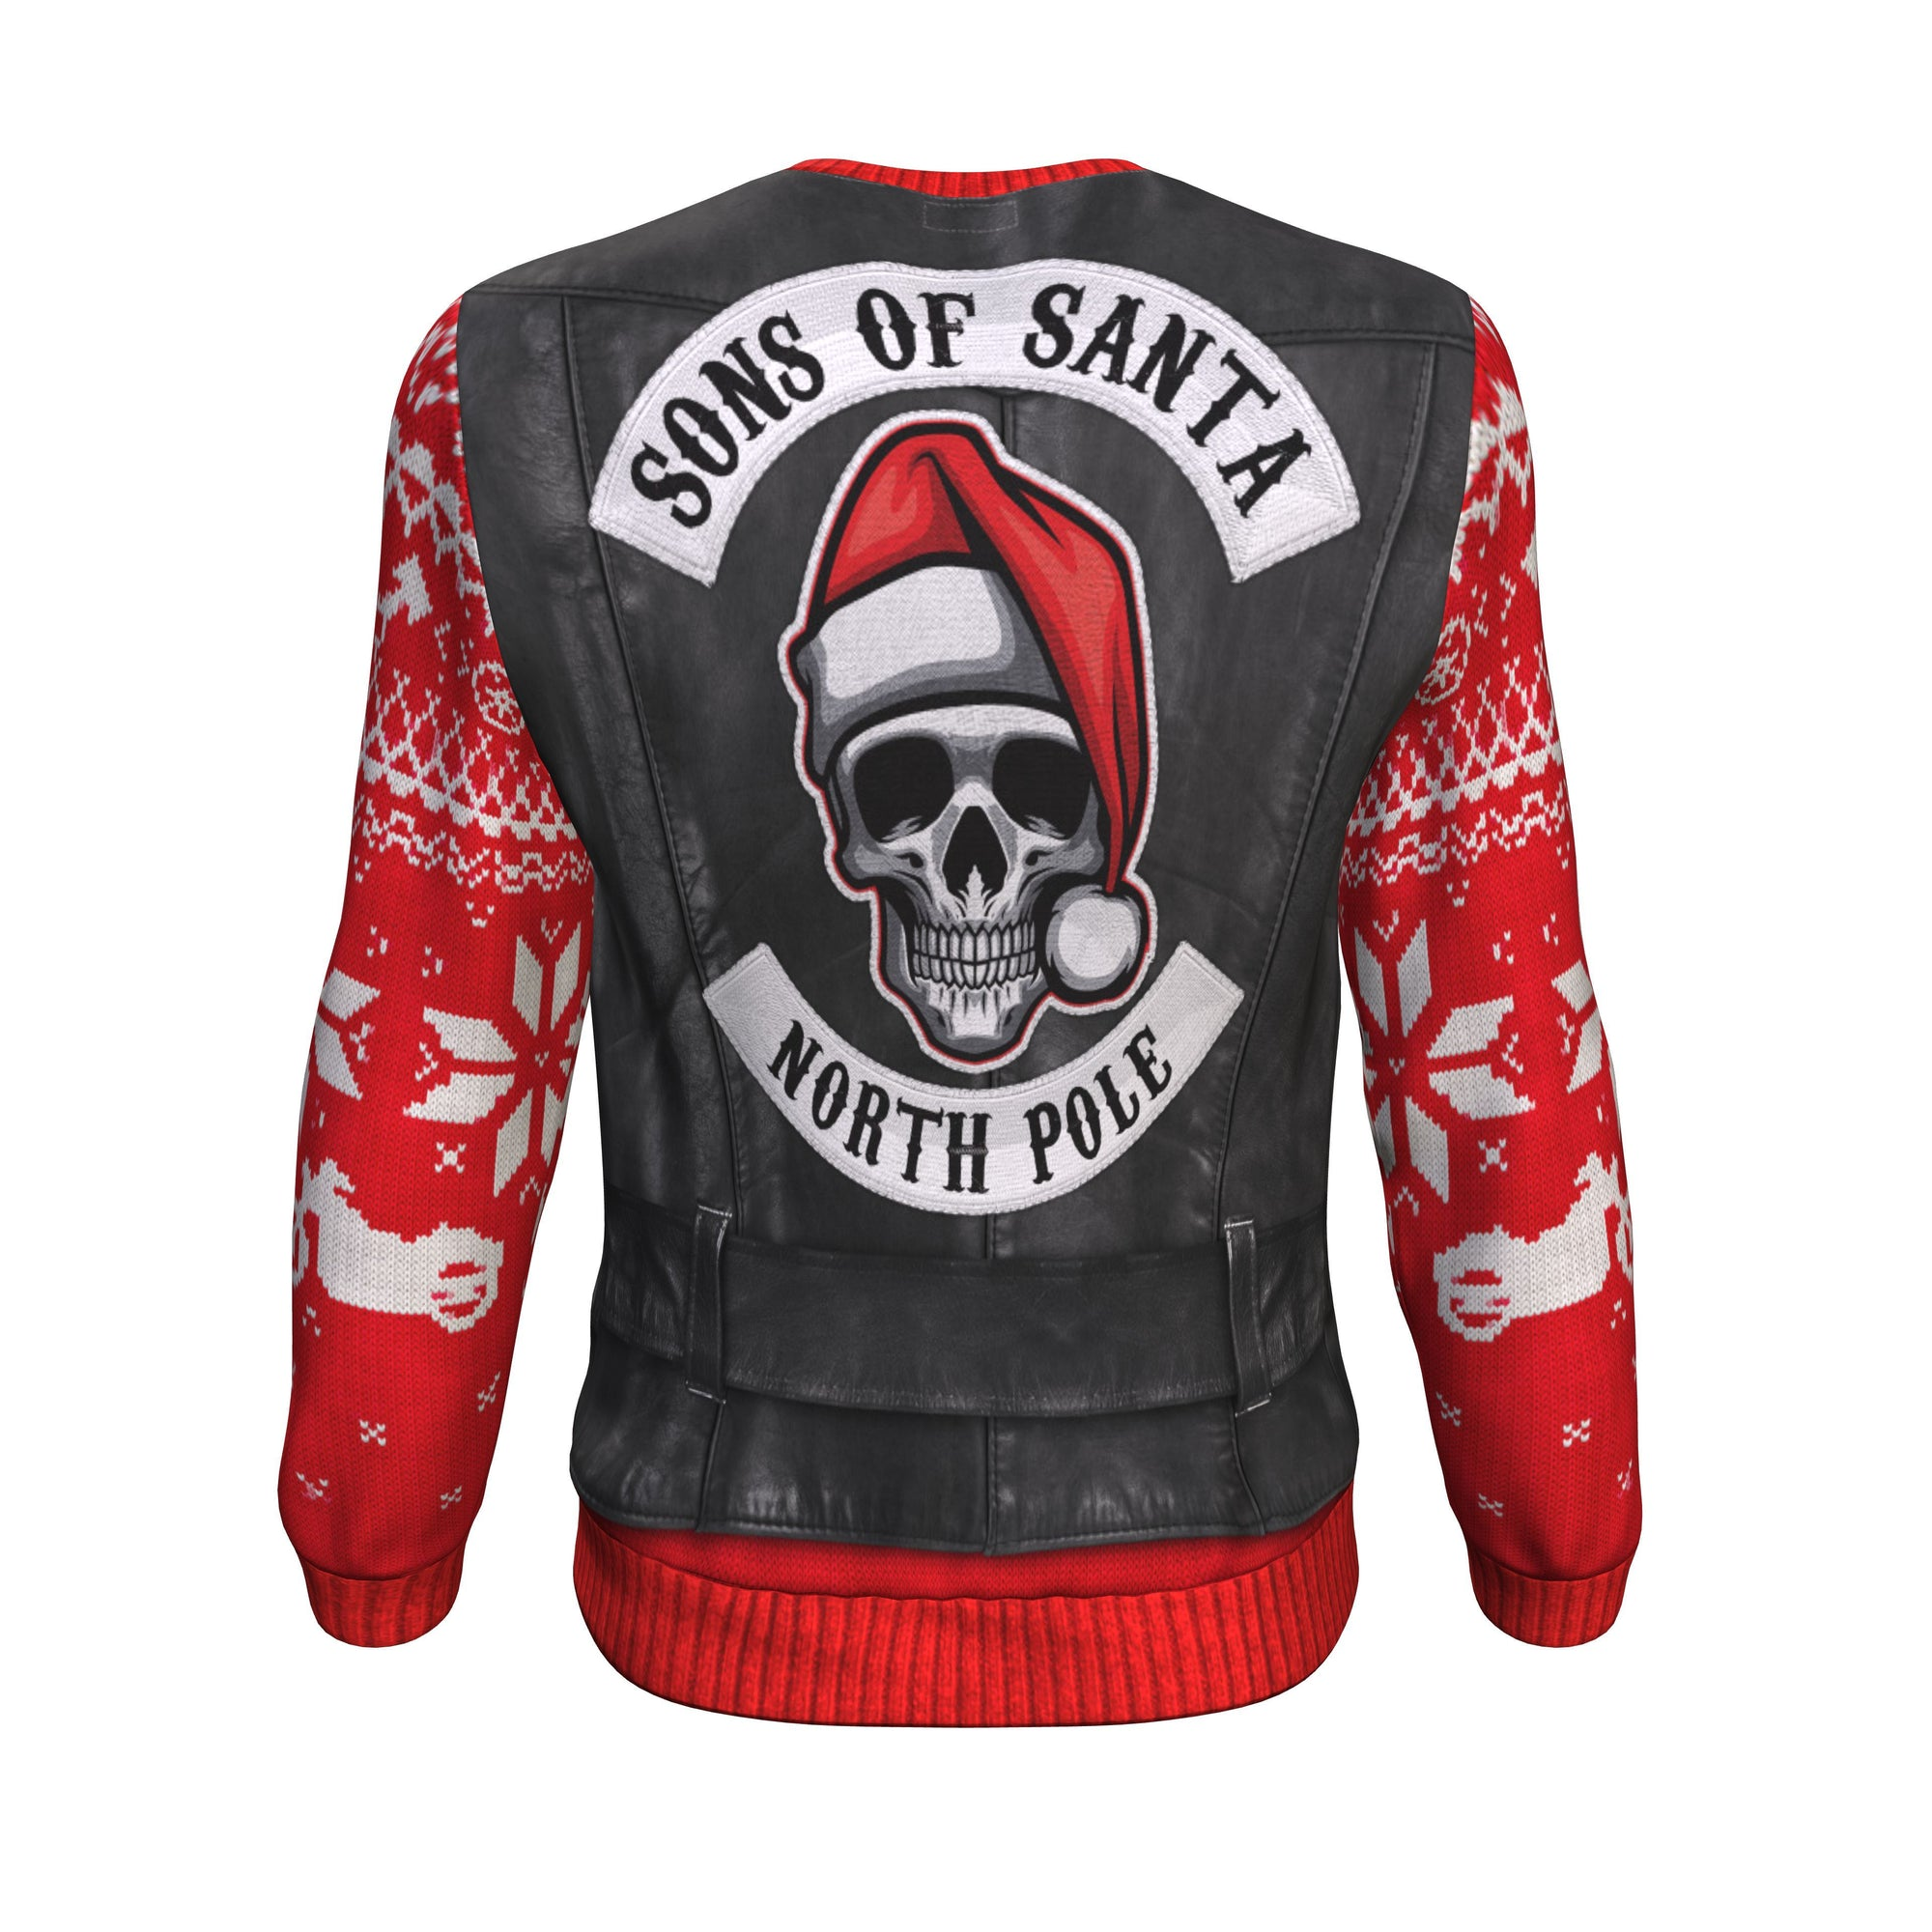 Sons Of Santa Sweatshirt